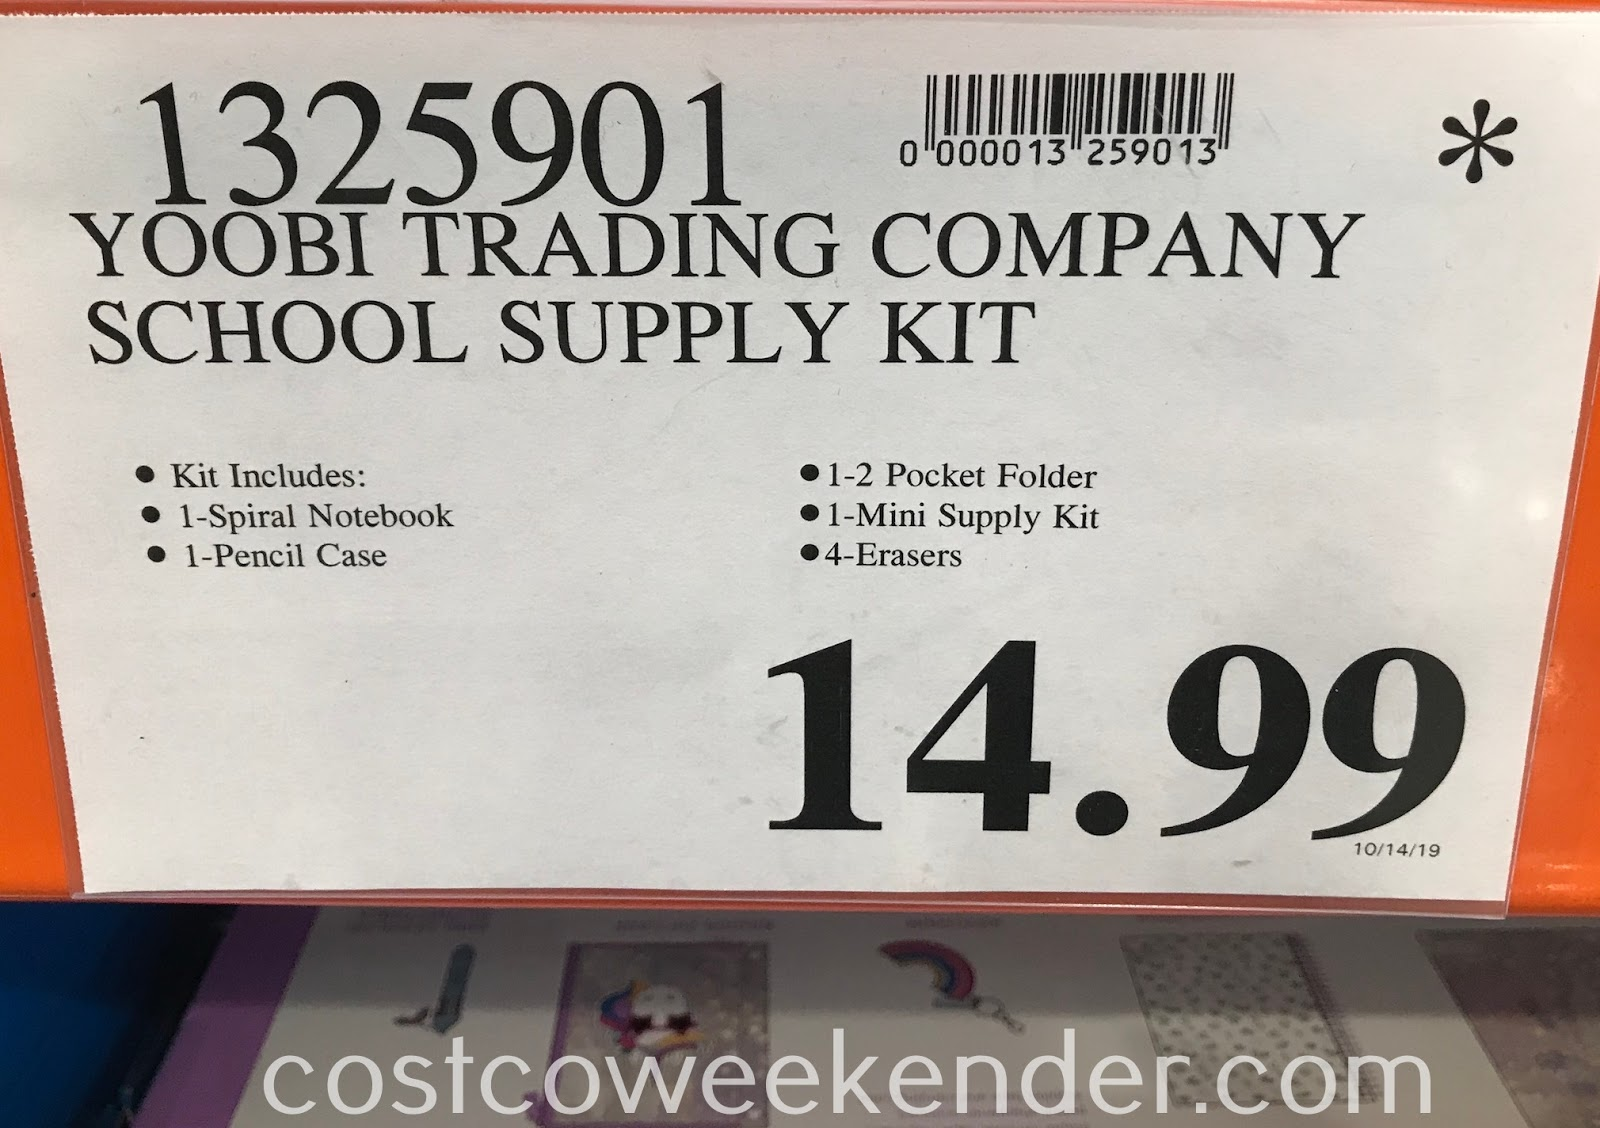 Deal for the Yoobi School Supply Kit at Costco